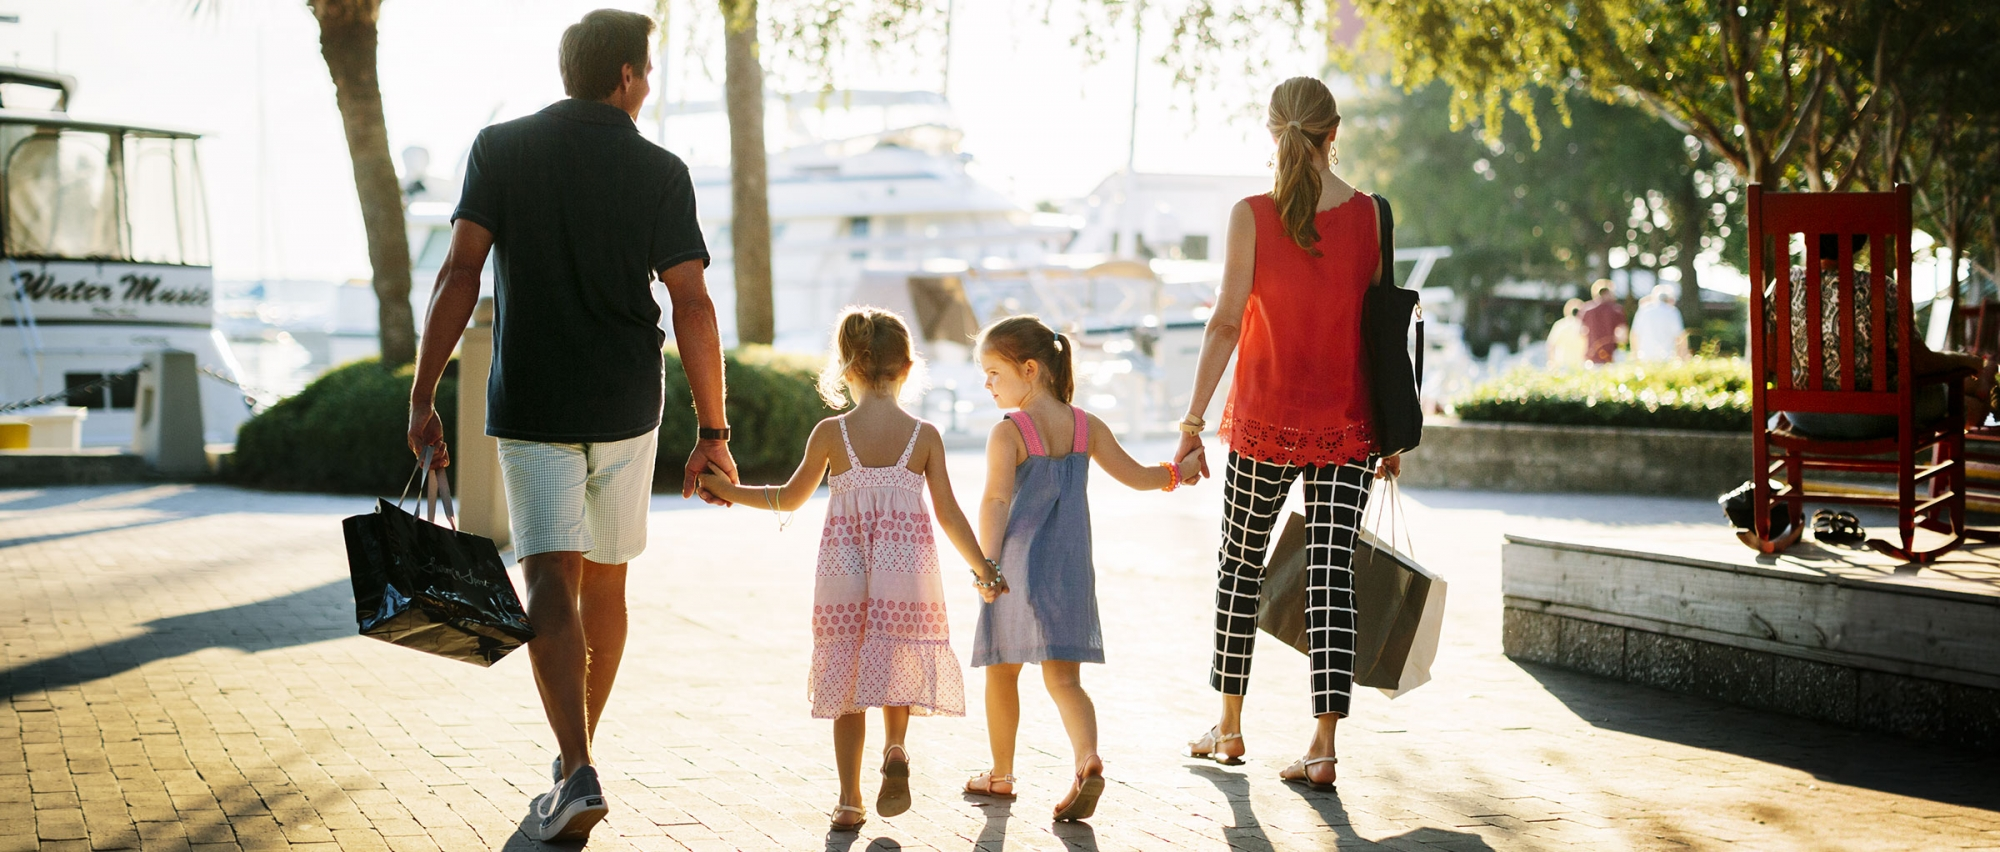 Family walking with shopping bags